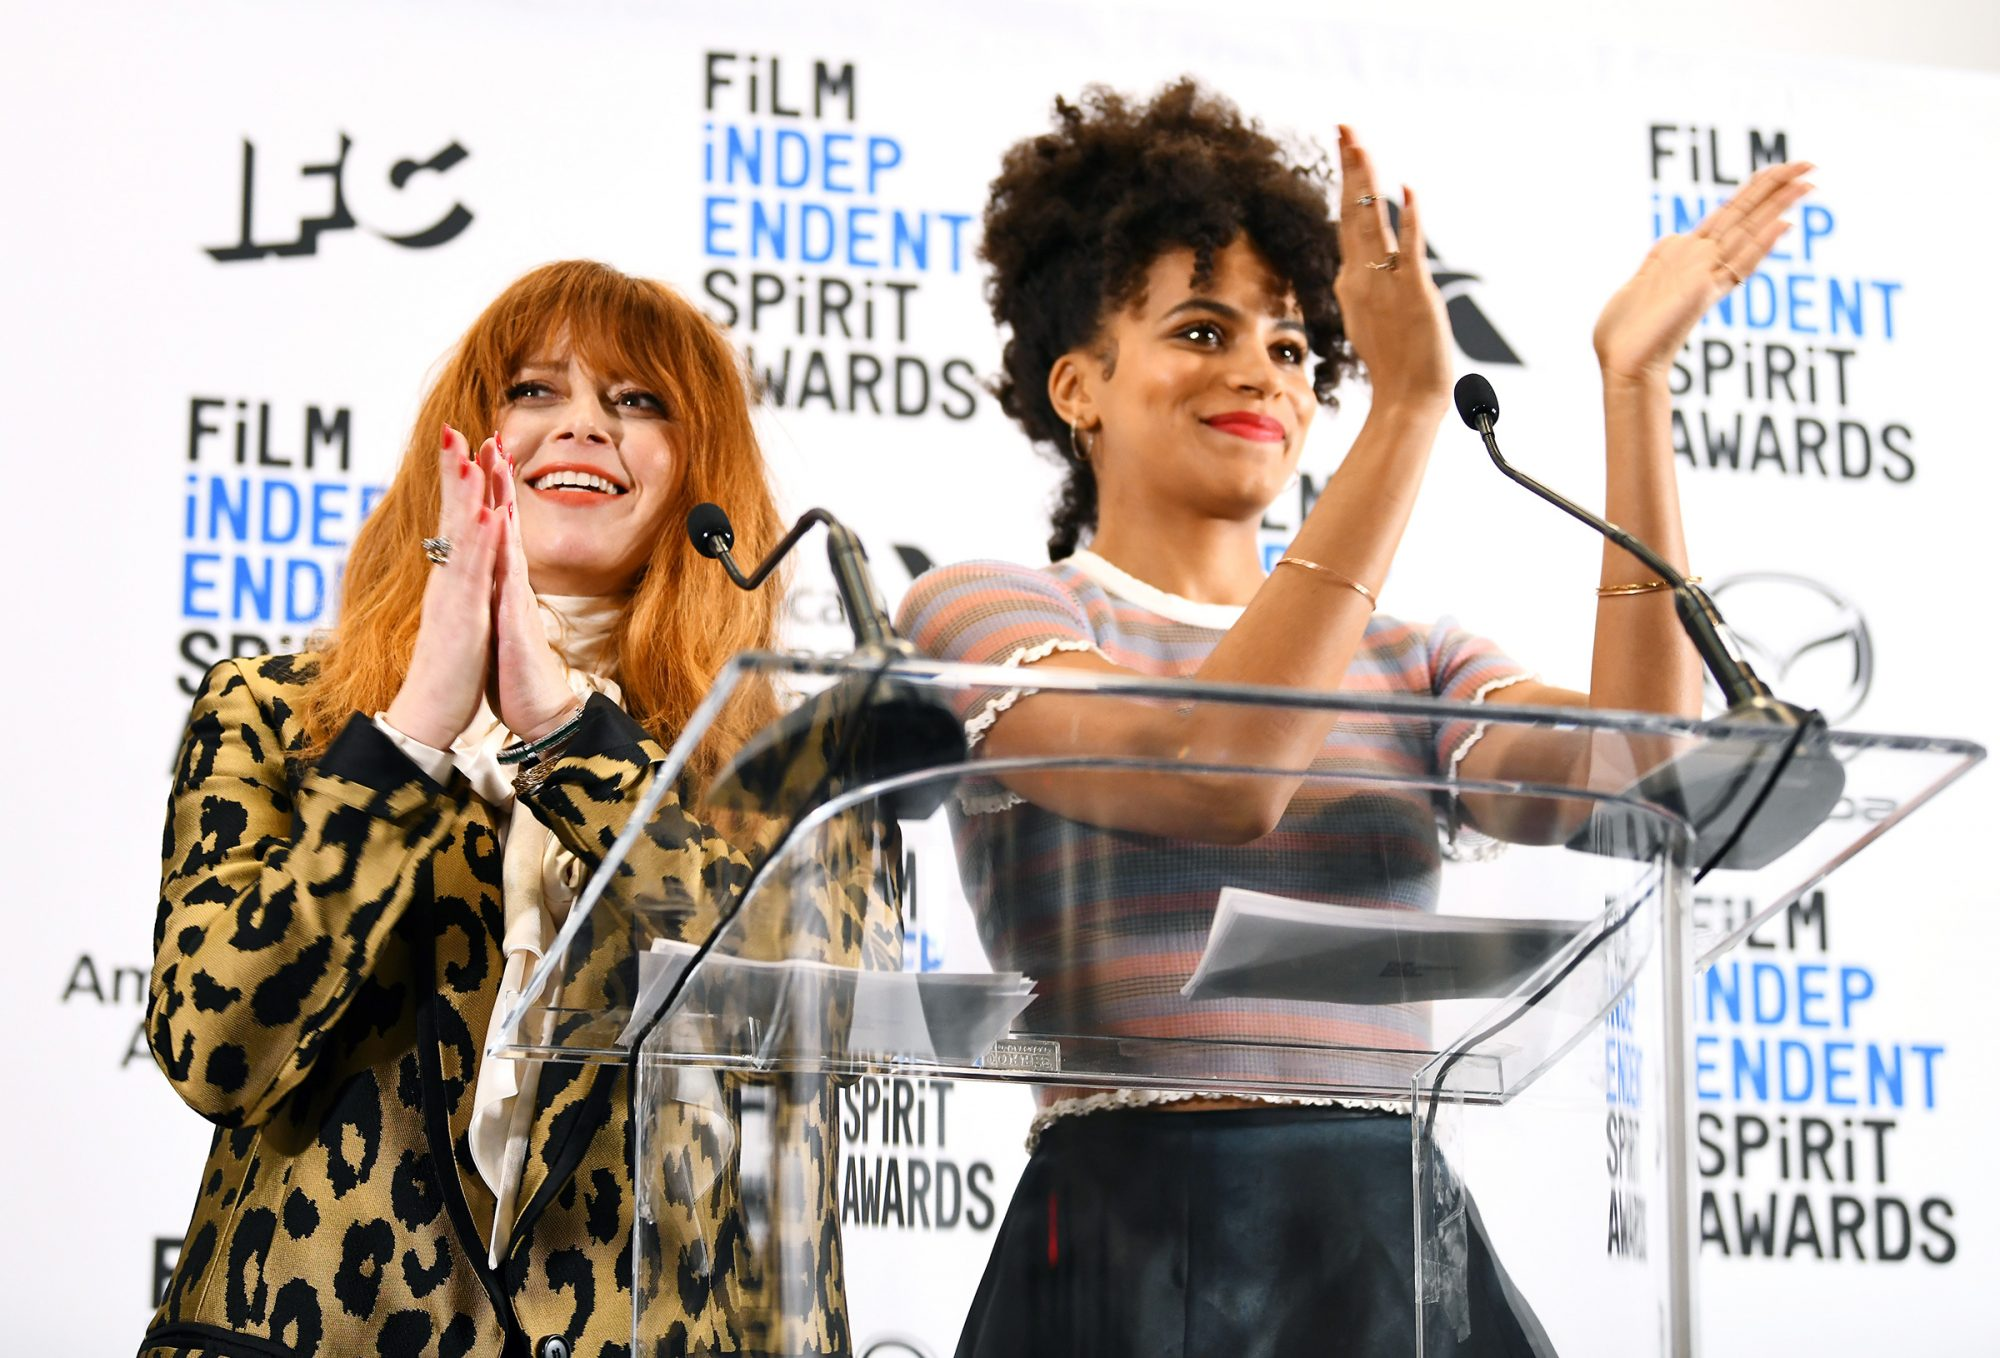 Natasha Lyonne and Zazie Beetz speak onstage during the 35th Film Independent Spirit Awards Nominations Press Conference at The Line Hotel on November 21, 2019 in Los Angeles, California